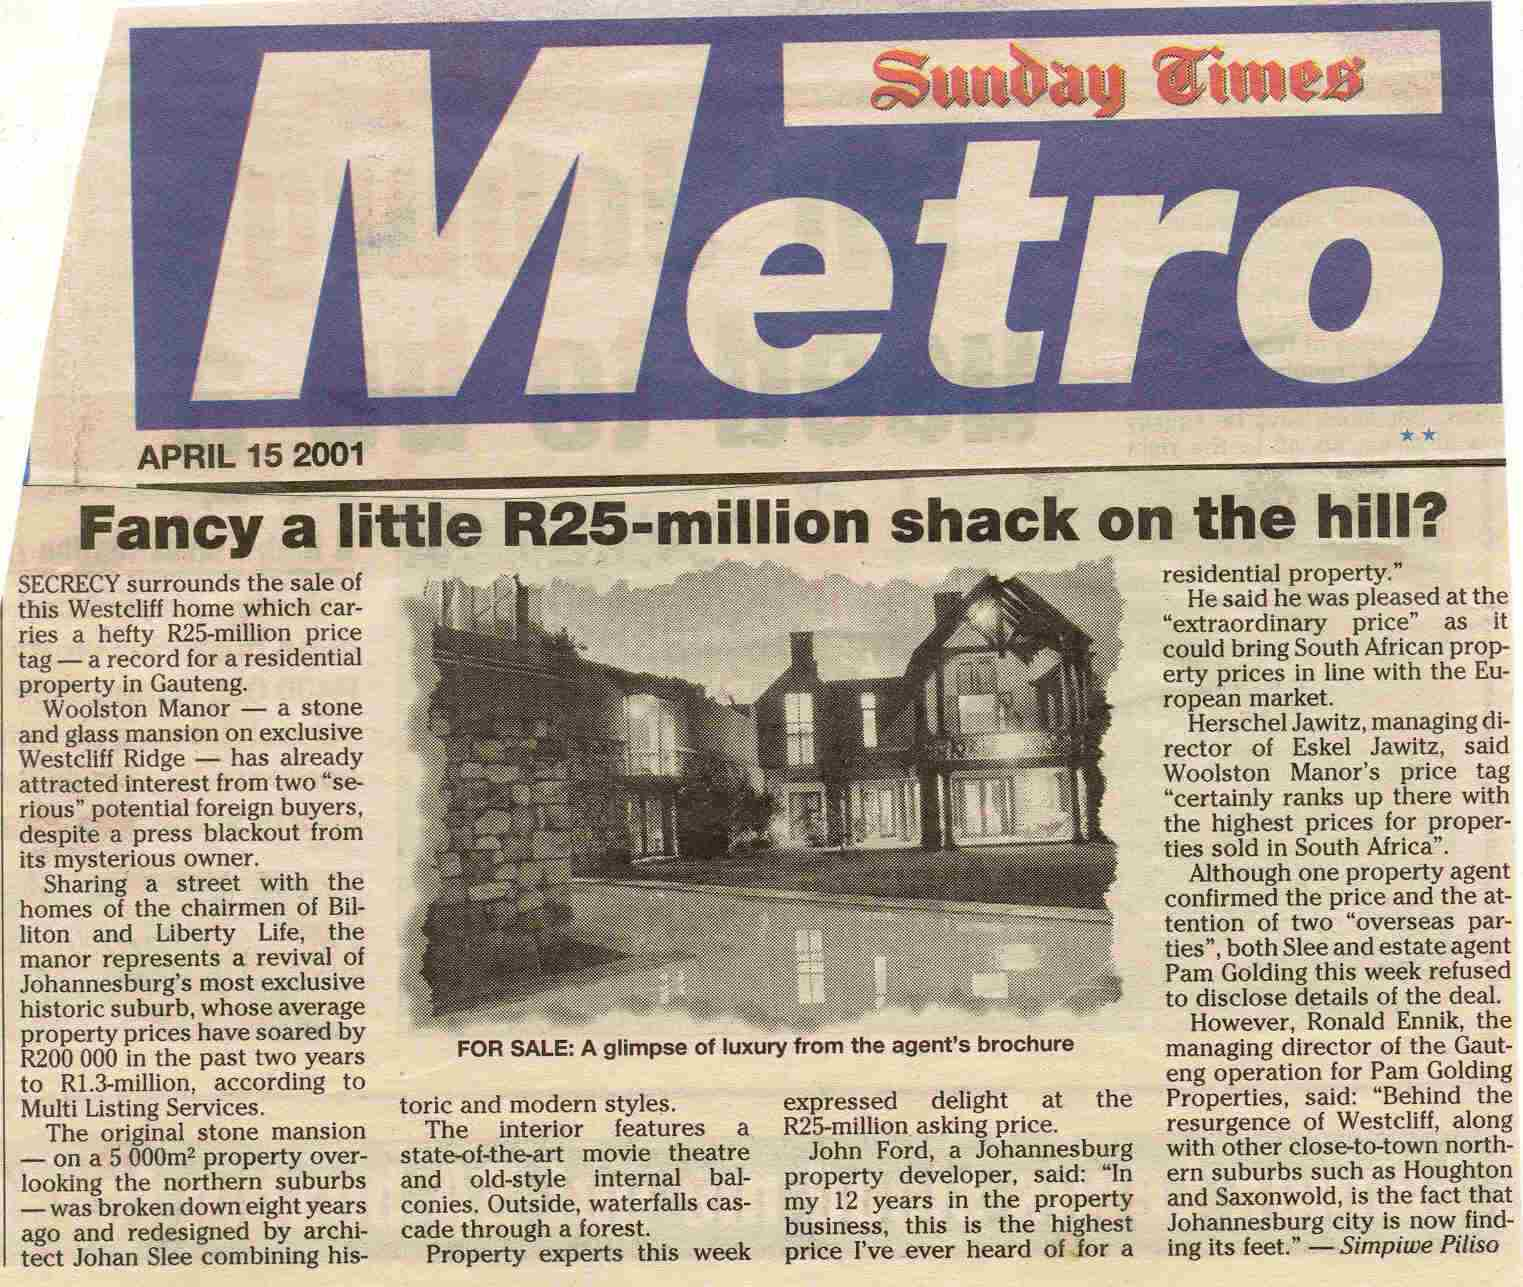 Sunday Times.2001.April 15.Fancy A Little R25 Mil Shack On The Hill.jpg